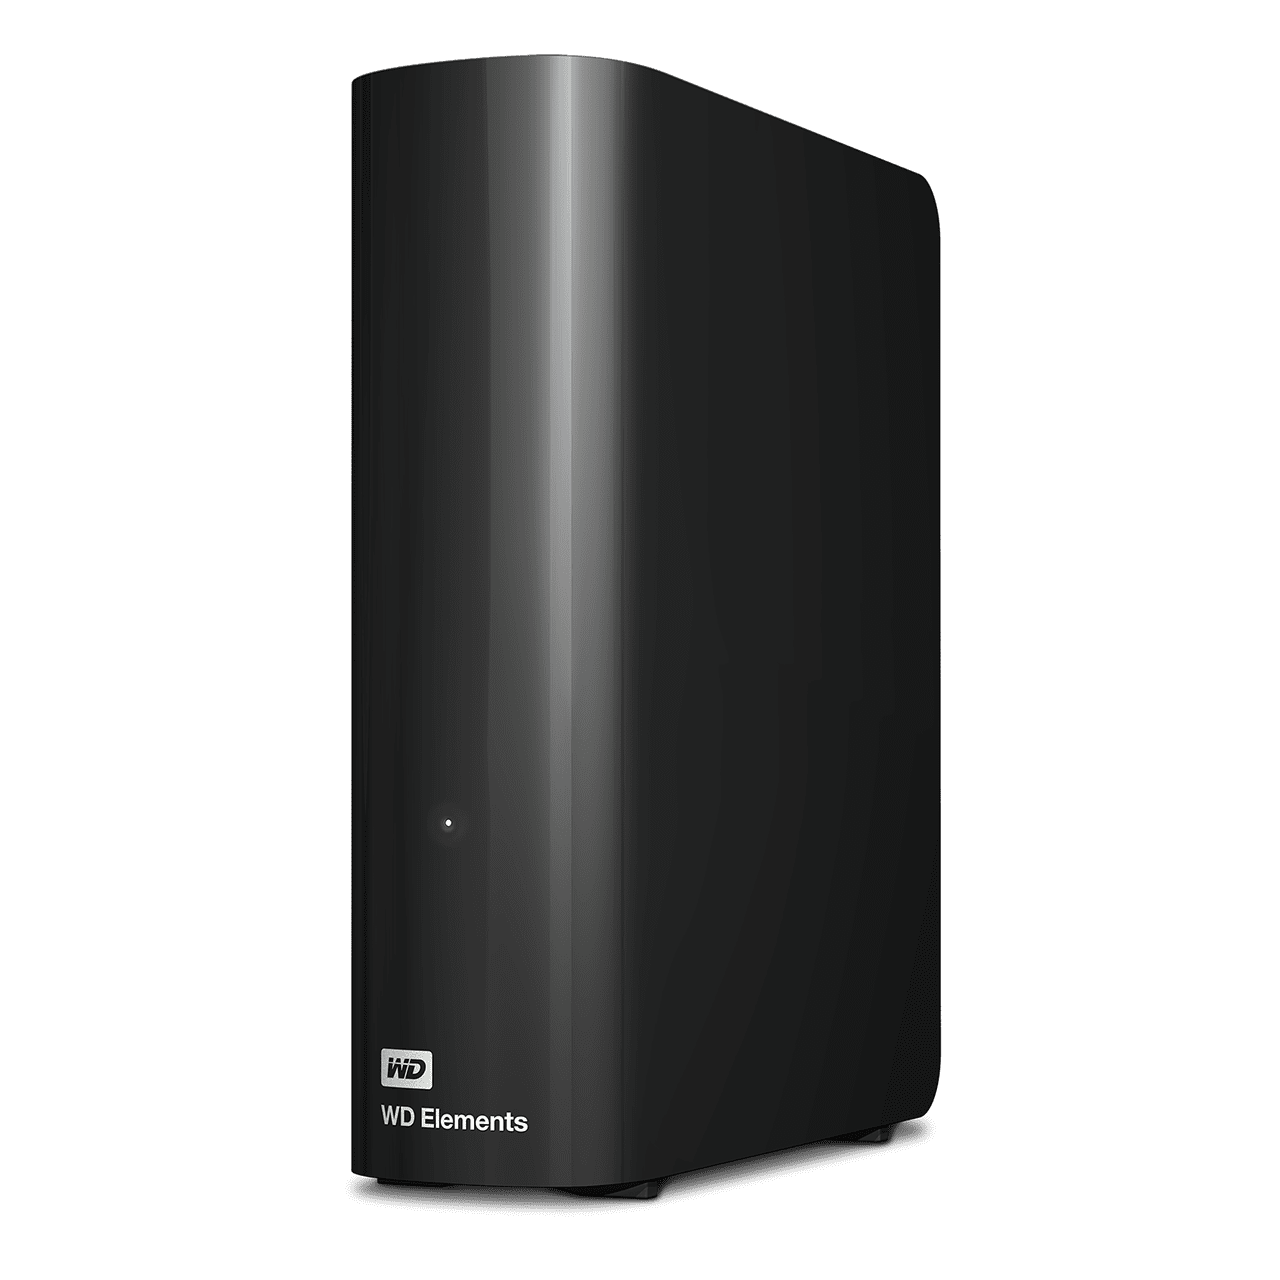 Western Digital Elements 8TB External Drive $123.25 with EDU discount (back in stock!) $123.23